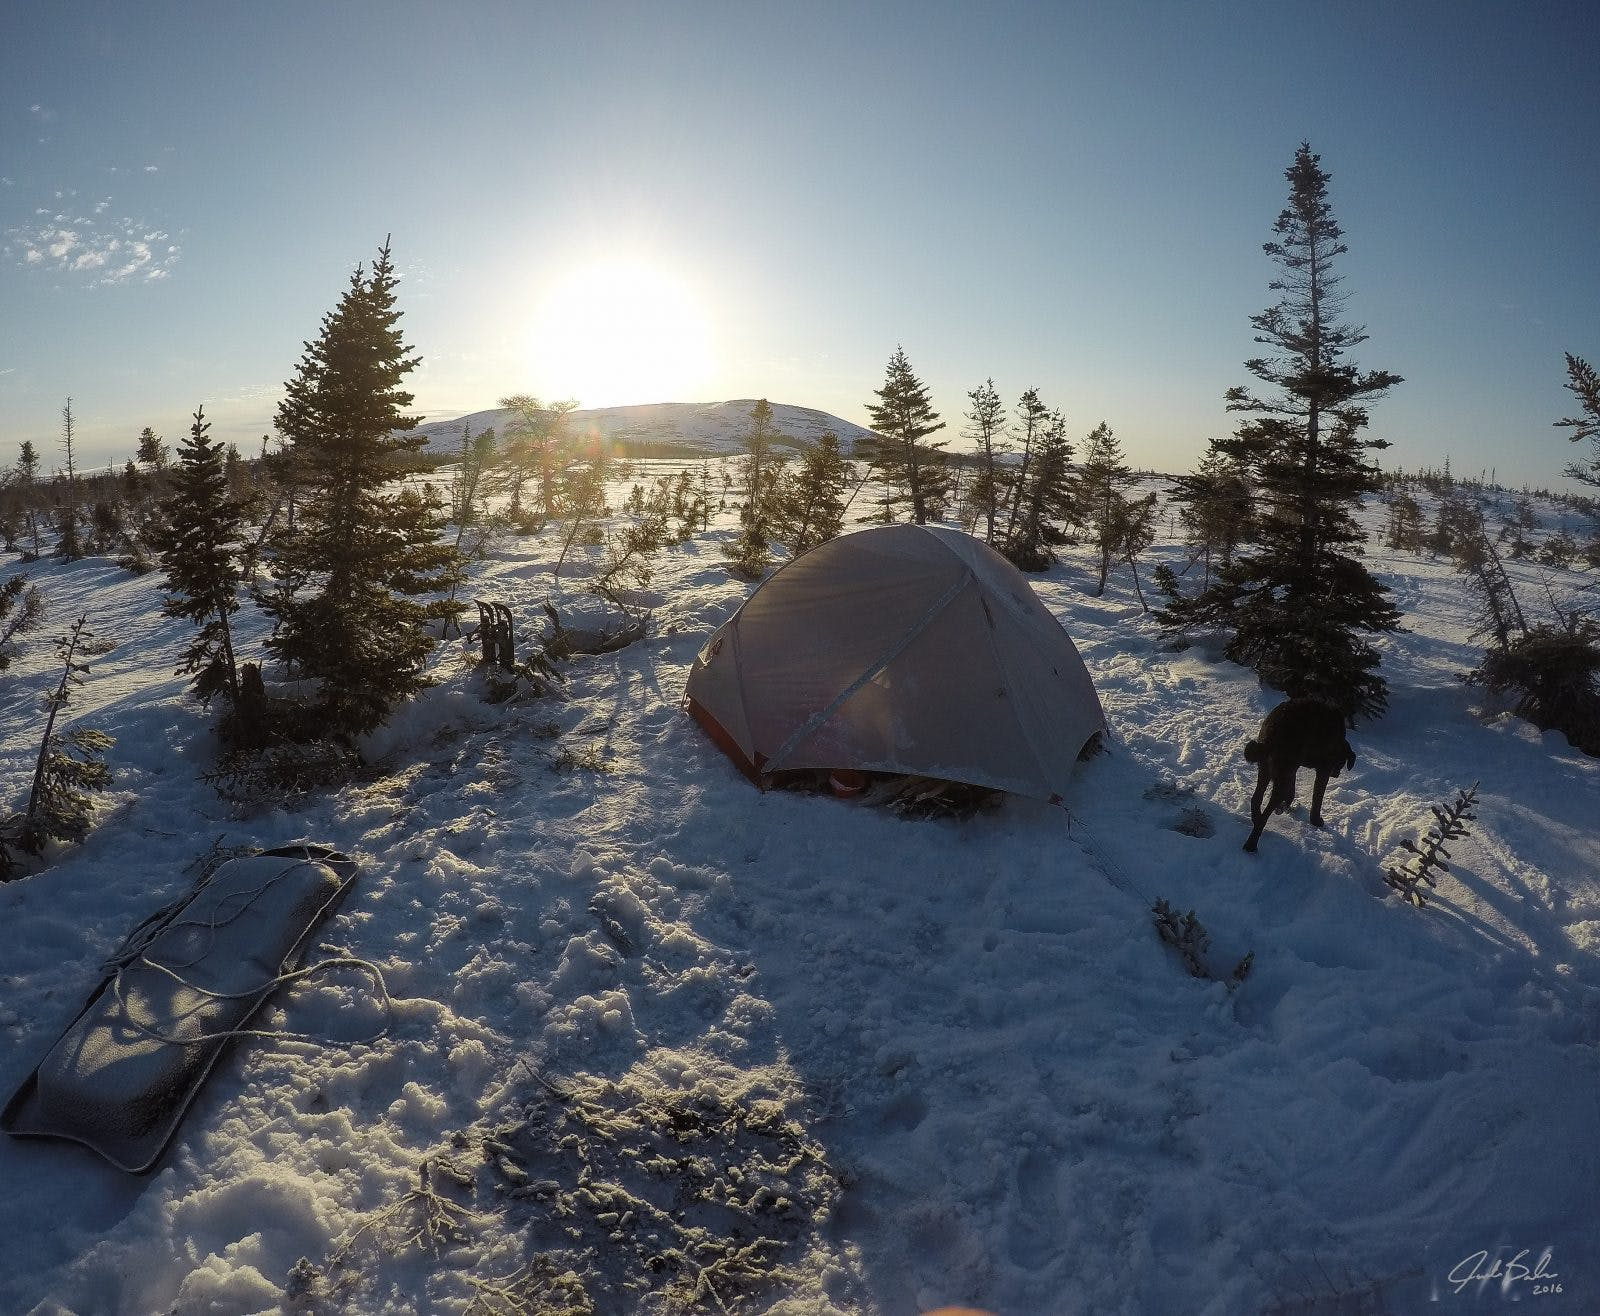 """""""A sunrise in Newfoundland's Long Range Mountains will cleanse your mind. I witnessed many. This winter site laid on upwards of 7 feet of snow. To create the camp I needed to endlessly walk the ground with my snowshoes to ensure we had a solid compacted base while Saku cheered me on. But itwas well worth it. The area was basically untouched besides the odd hunting/fishing lodge and the views are indescribable. Being here made me feel small. With barren, inhospitable land surrounding me from all angles, it gave me goosebumps that I still feel today. Chase your dreams folks, anything is possible!"""""""